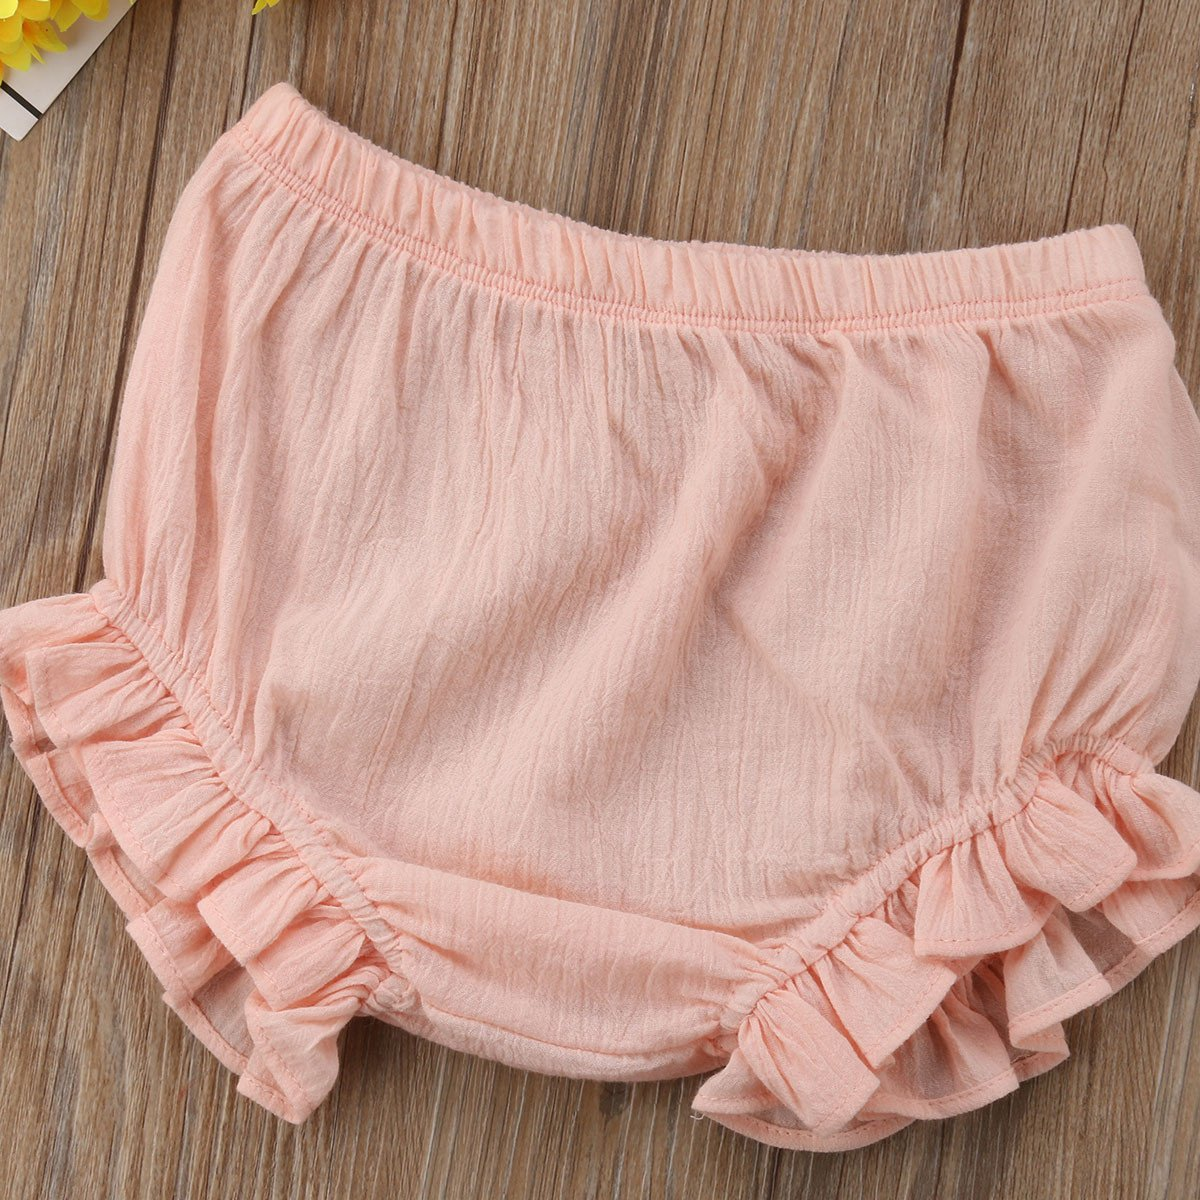 Mornbaby Baby Girl's Bloomers Cotton Ruffle Panty Diaper Covers Underwear Shorts Toddler Kids Girls (Pink, 2-3 Years) by Mornbaby (Image #3)